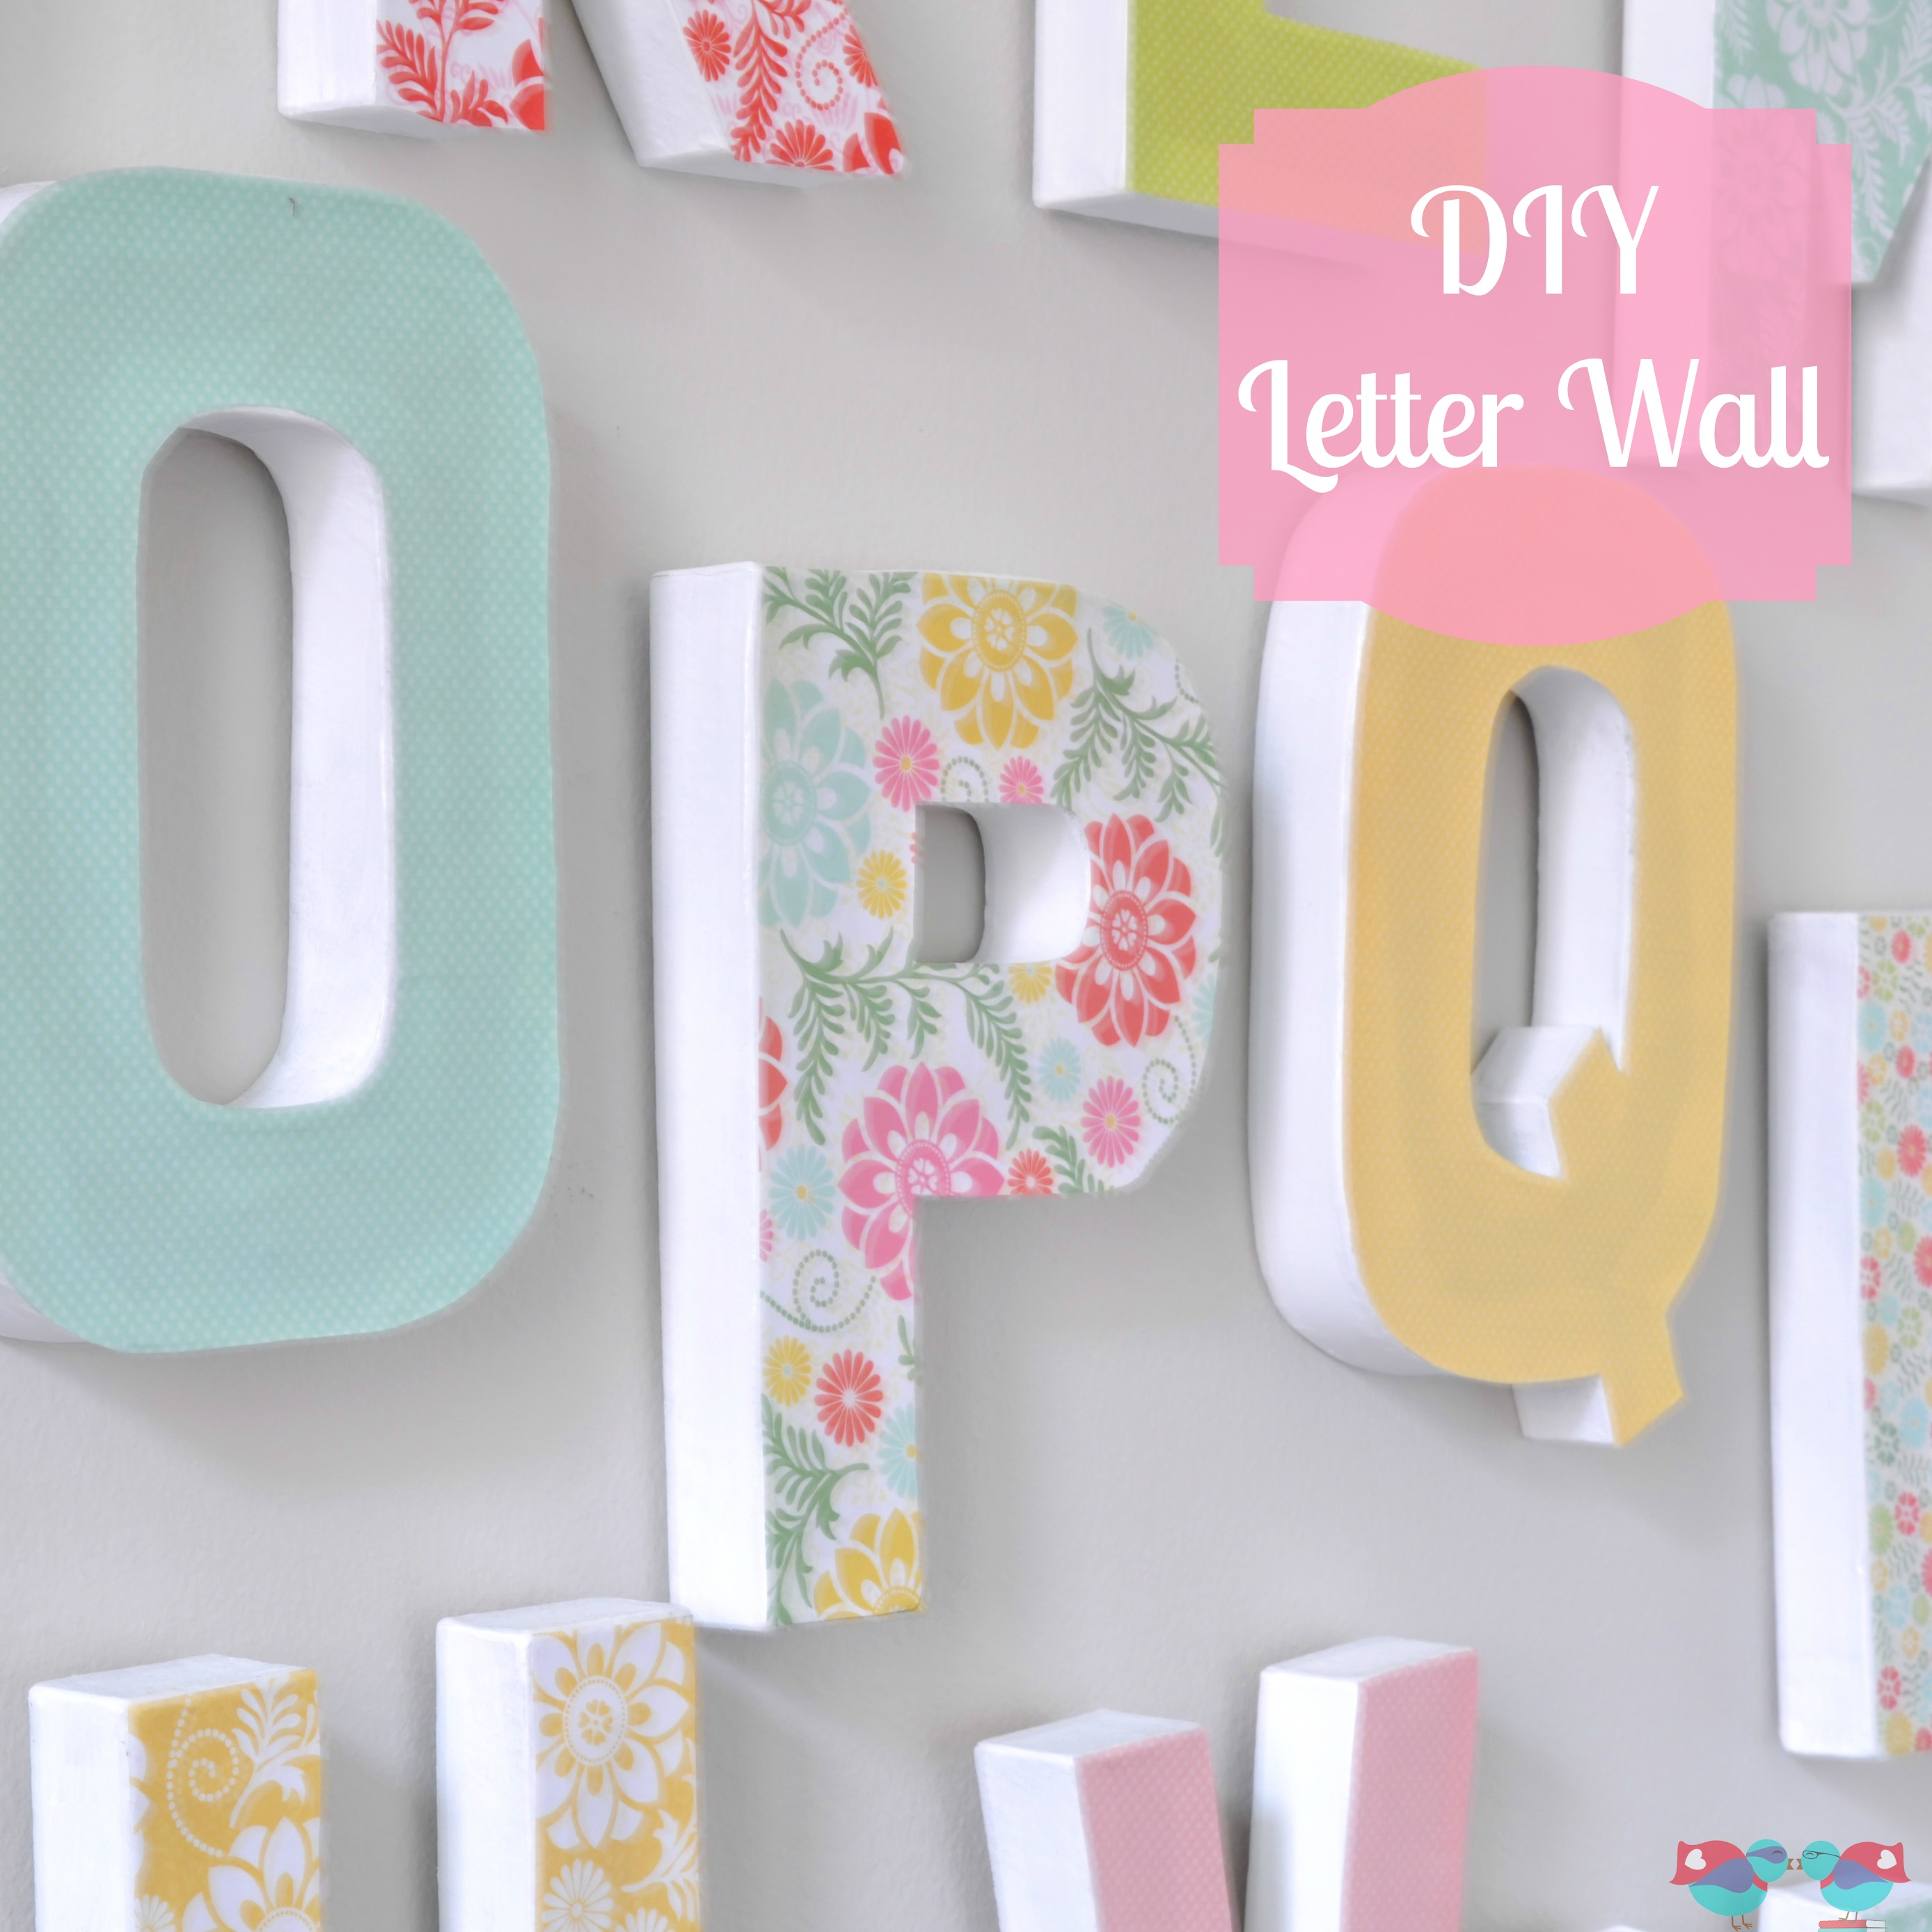 Alphabet Letters For Wall Enchanting How To Make Your Own Letter Wall  The Love Nerds Inspiration Design